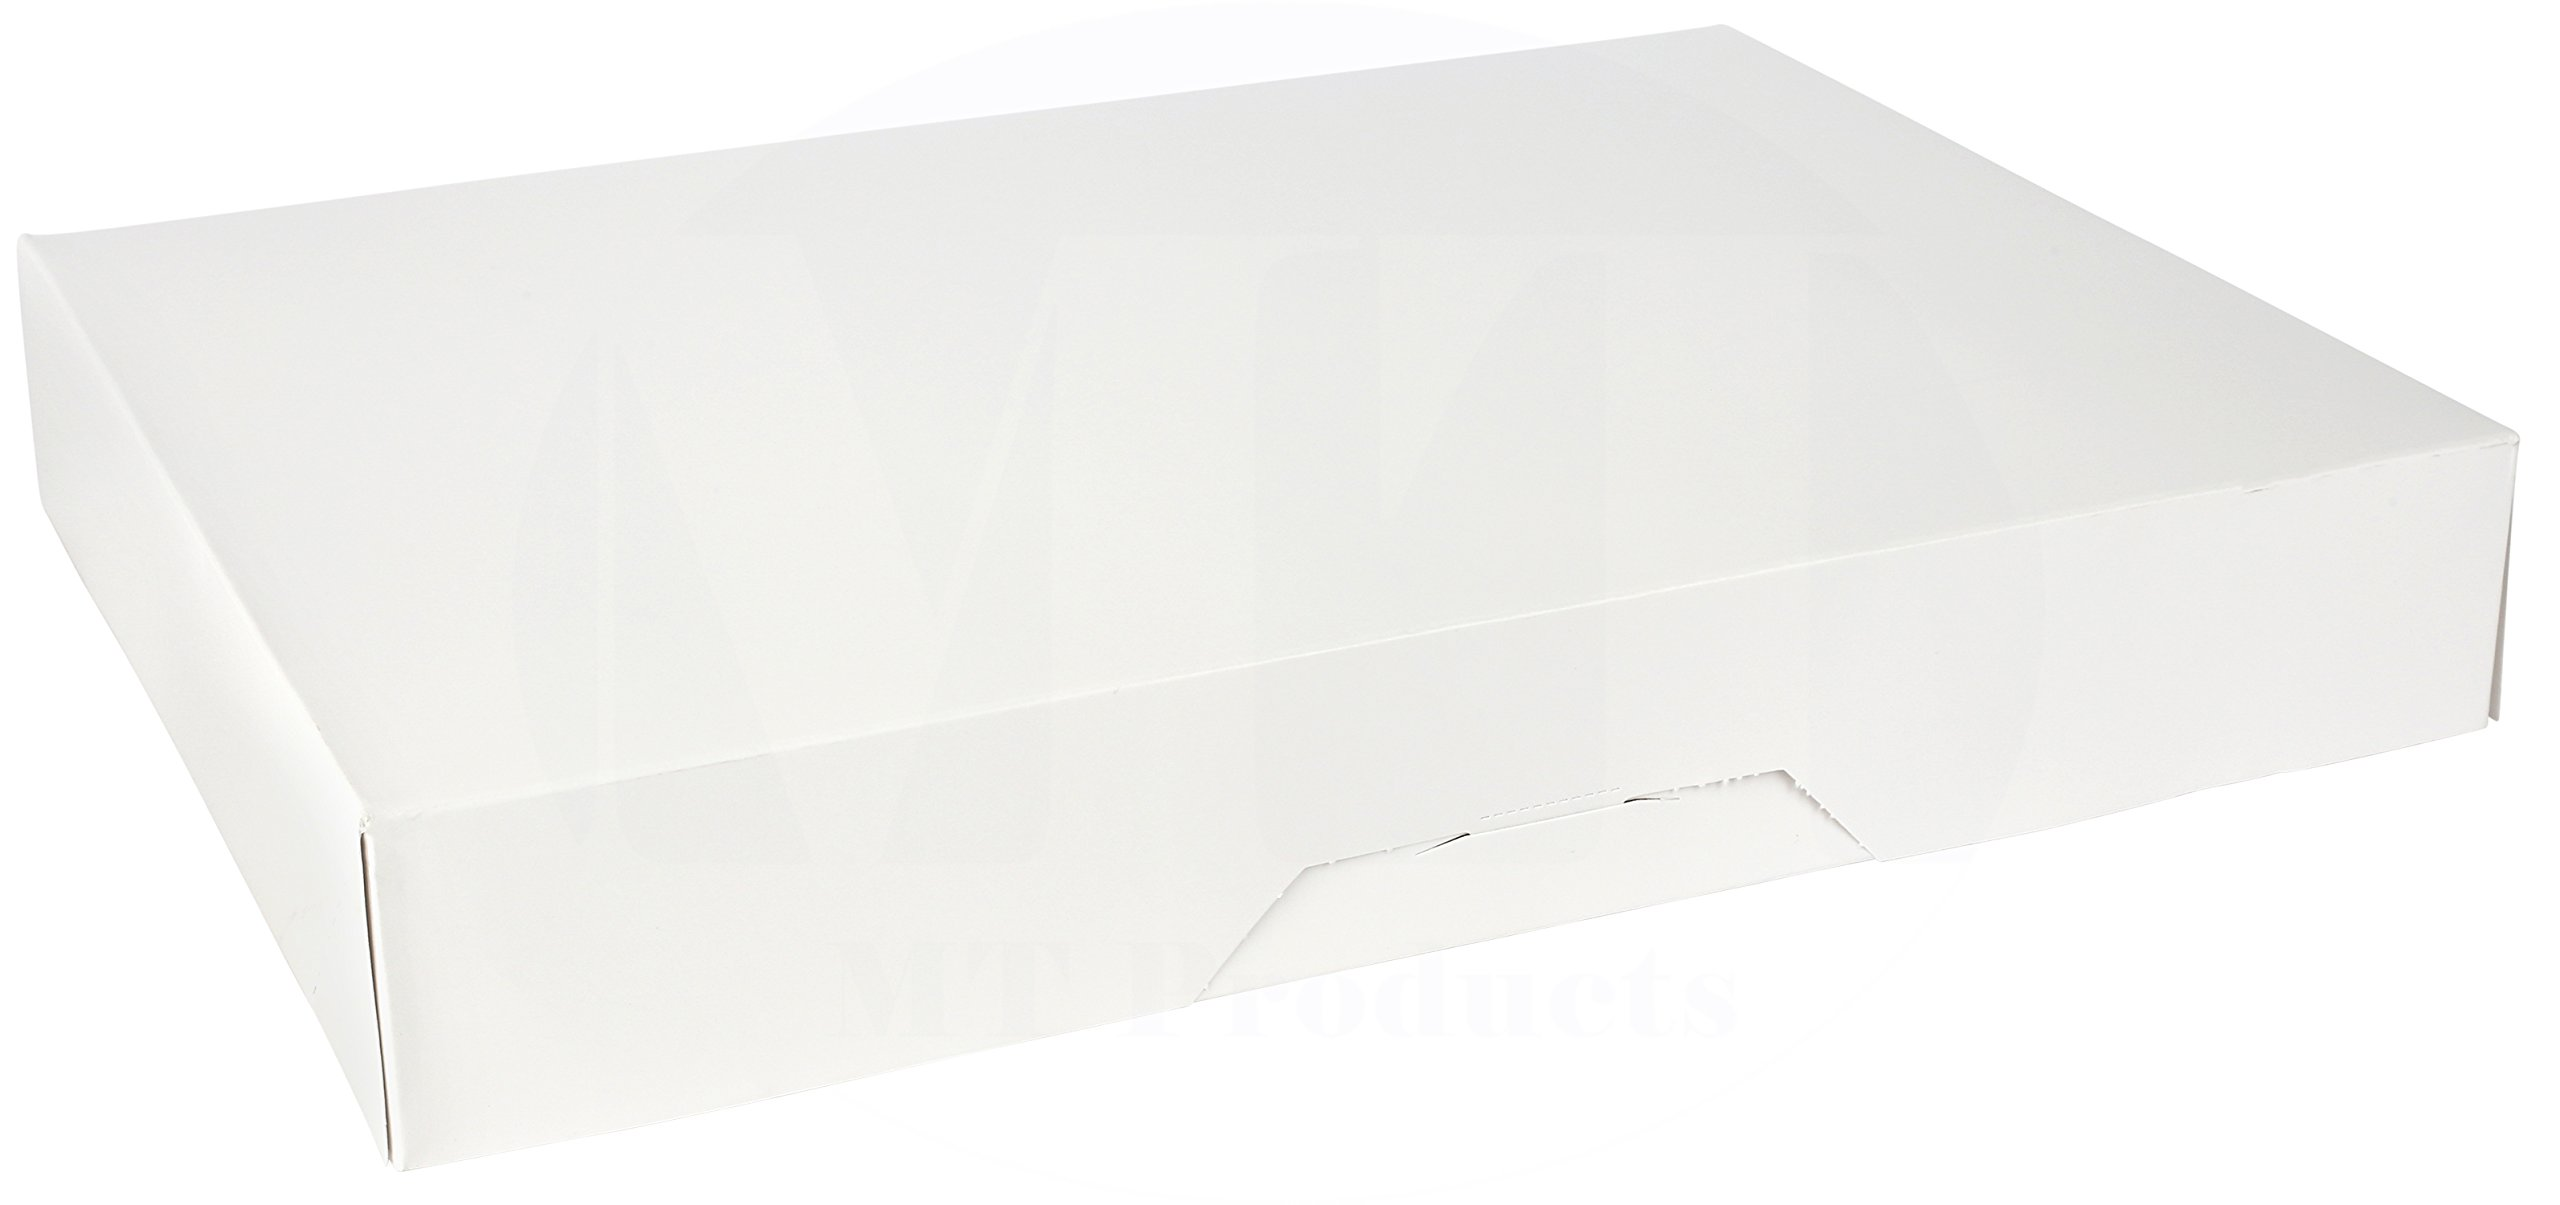 15'' Length x 11.5'' Width x 2.25'' Height White Kraft Paperboard Auto-Popup 1-Piece Donut Bakery Box by MT Products (Pack of 15)